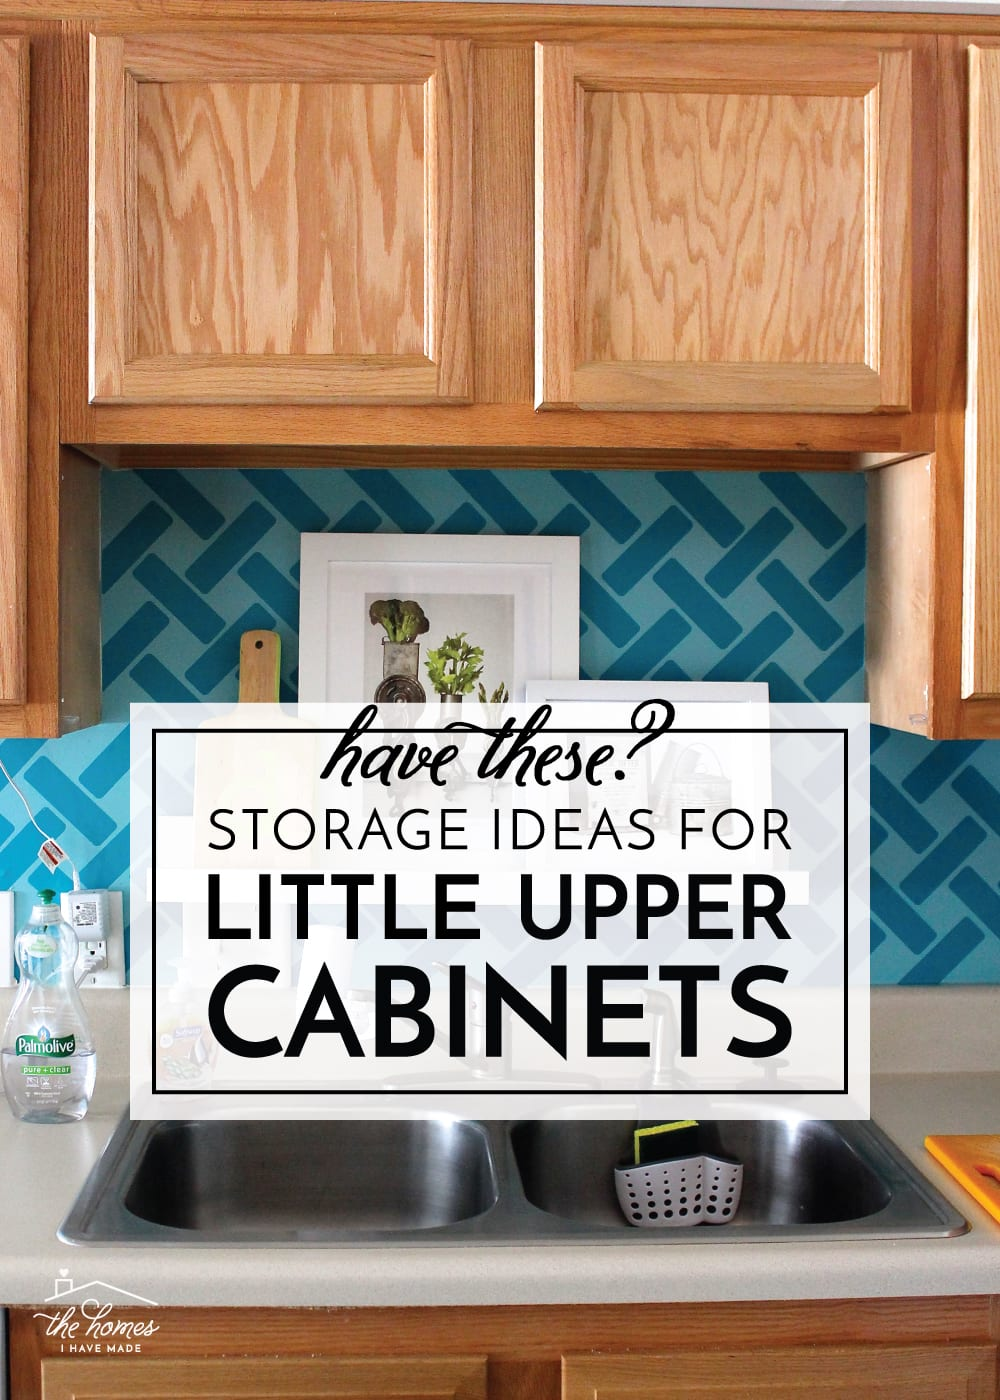 Little Upper Cabinets